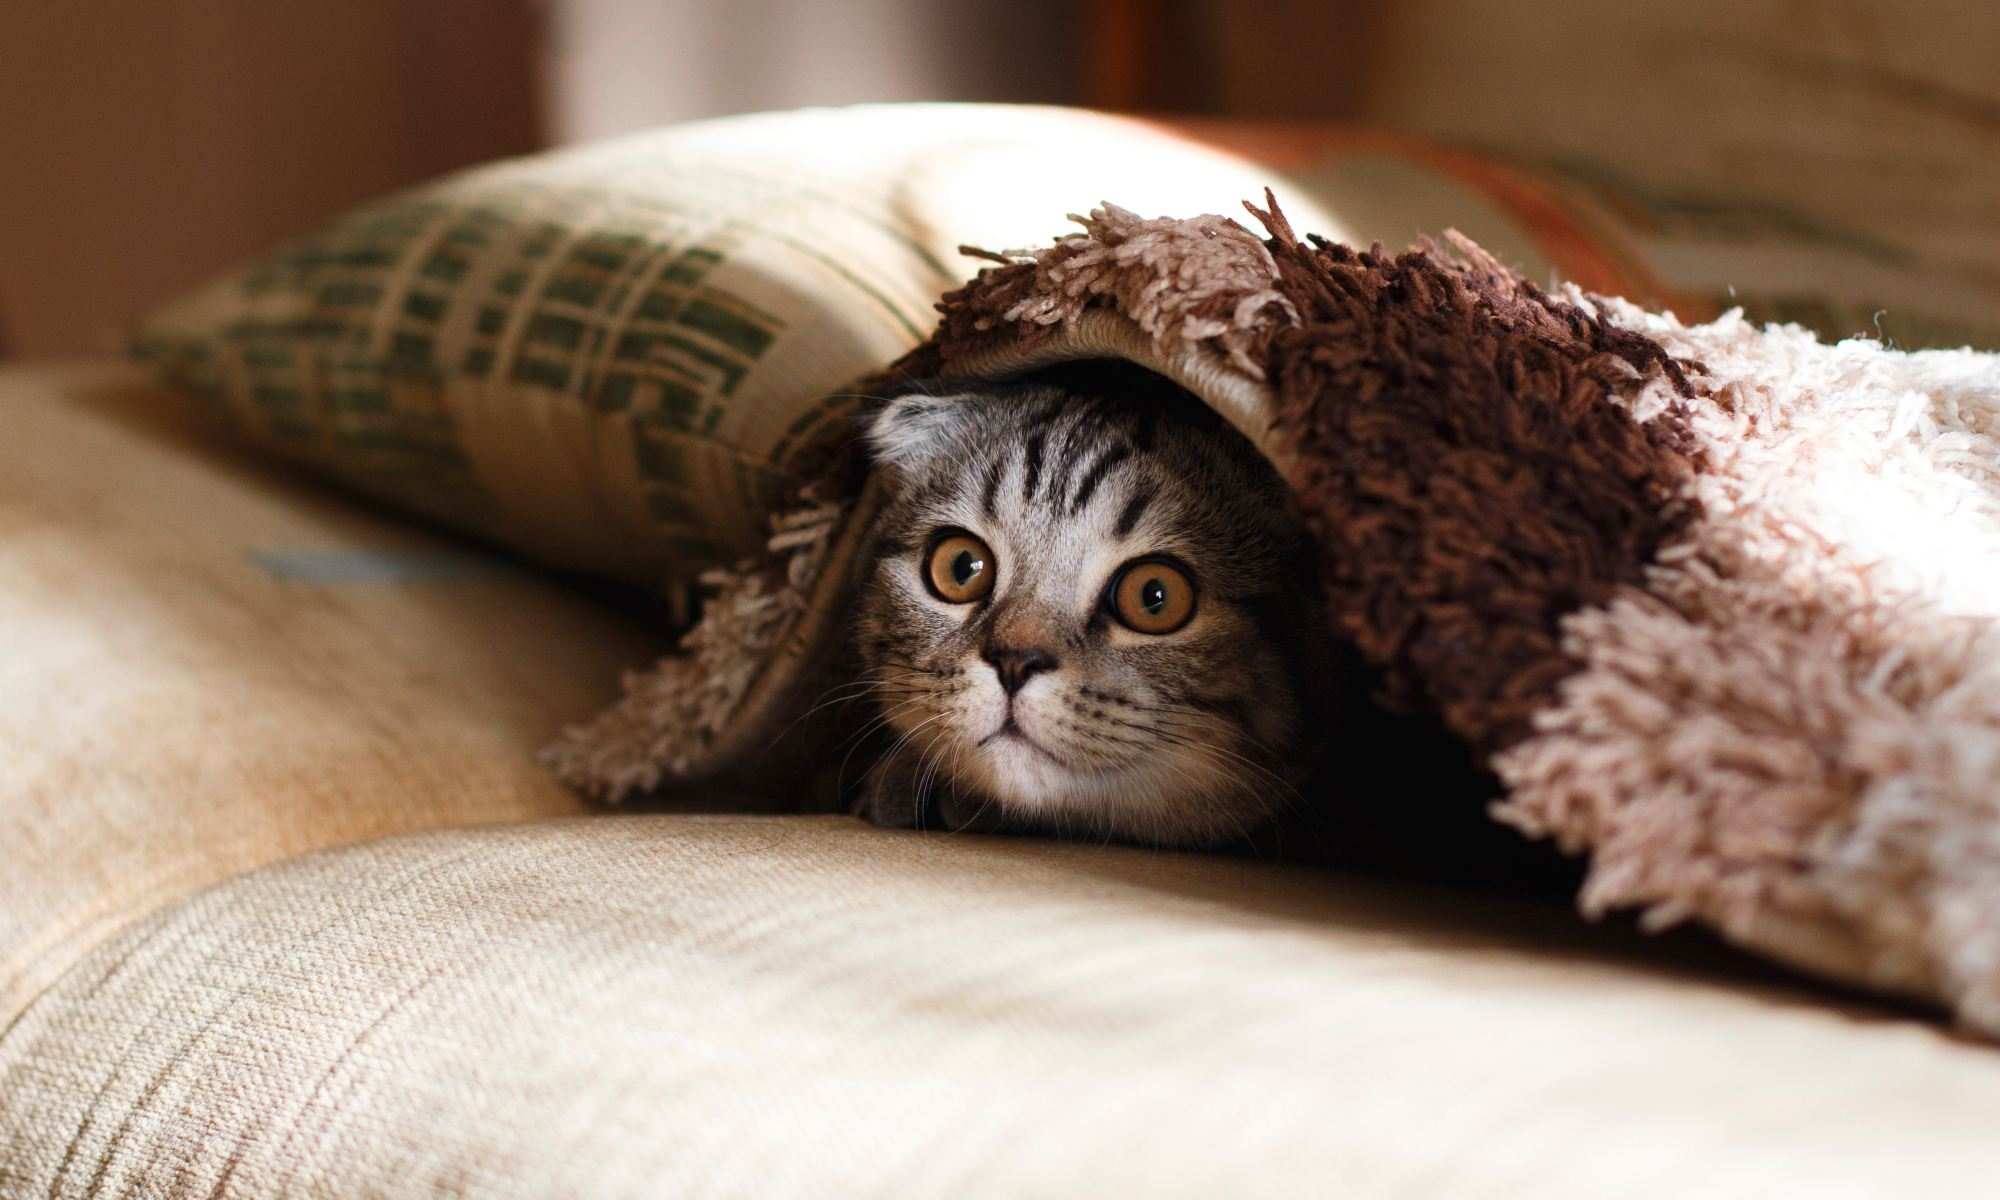 cat emerging from blanket by mikhail vasilyev